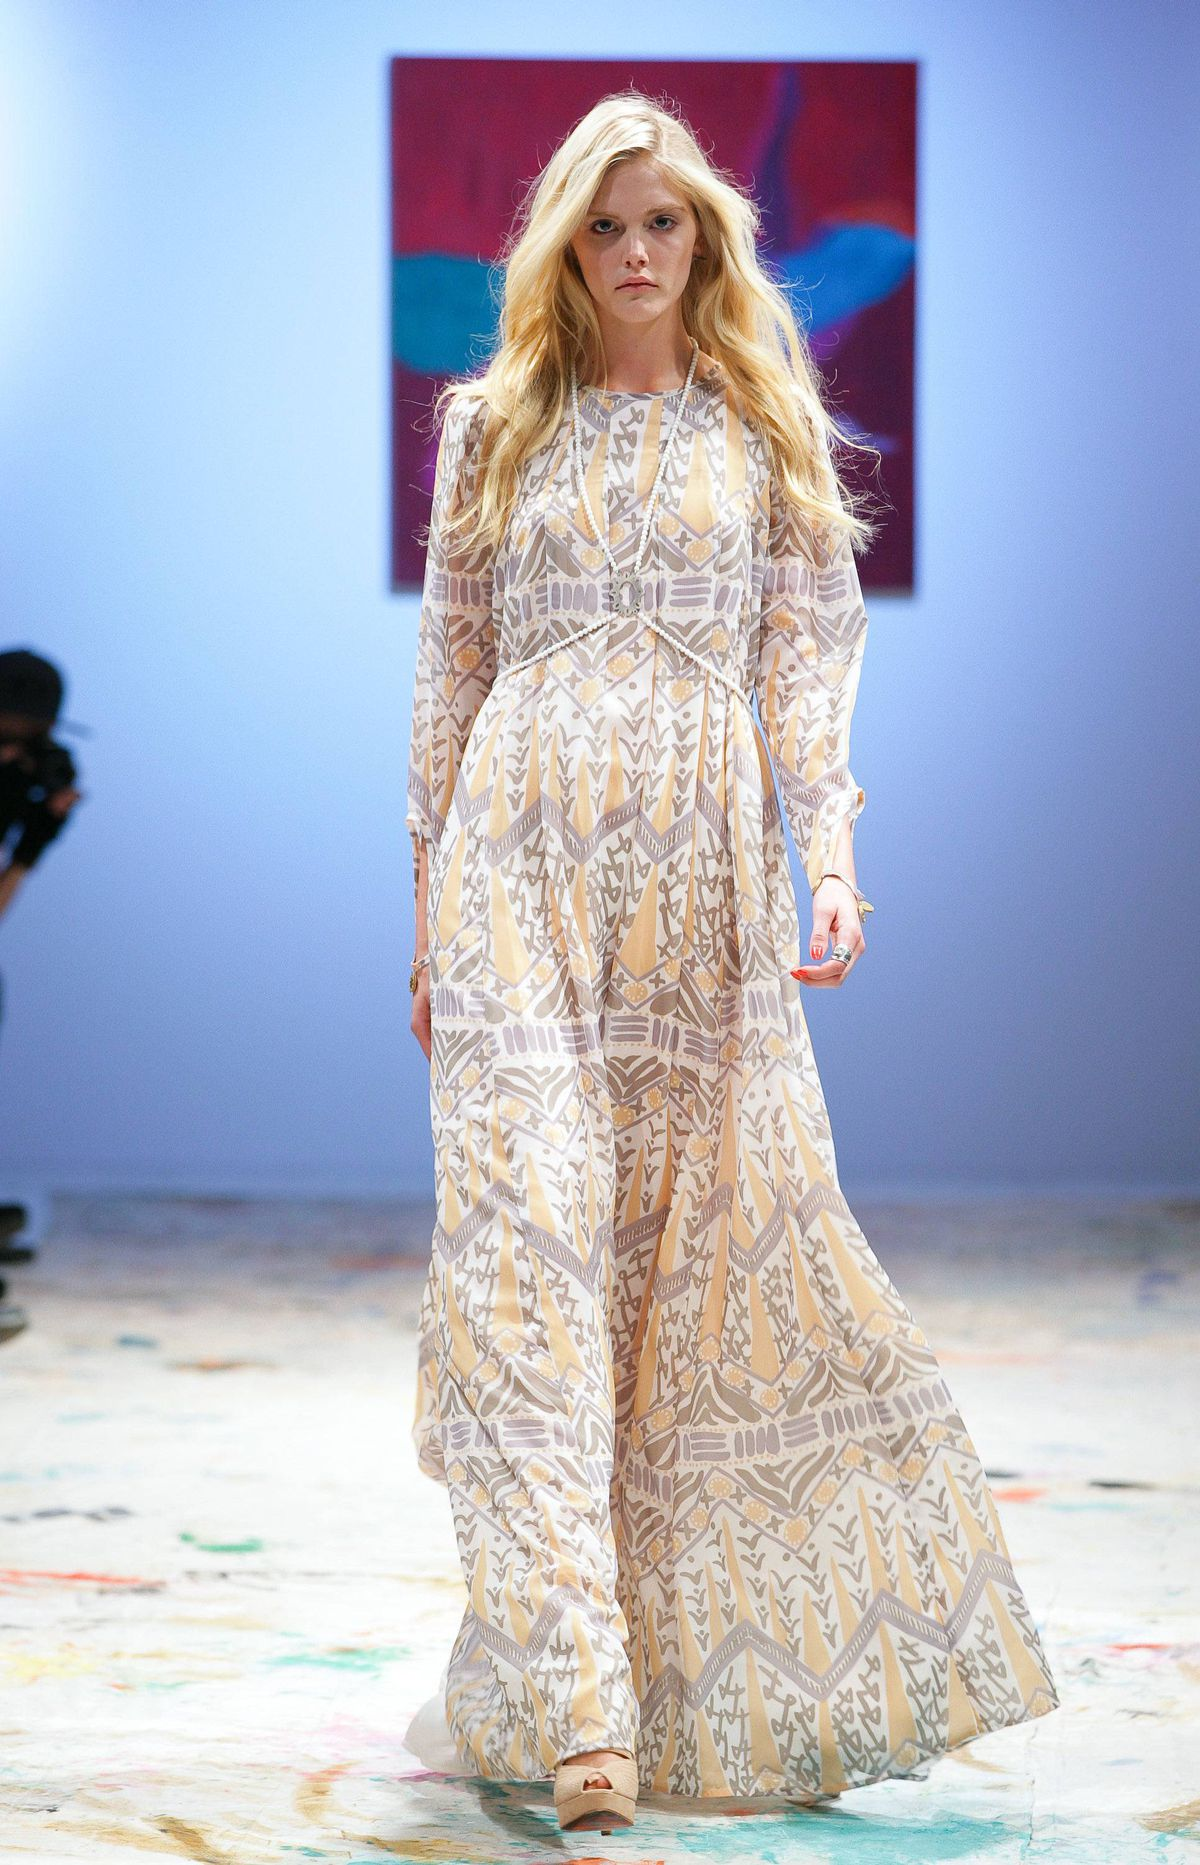 It was the custom prints, however, that were the true champion in this collection. They were best showcased in the piece de resistance: a long-sleeved maxi in a subtle, neutral palette that floated down the runway.